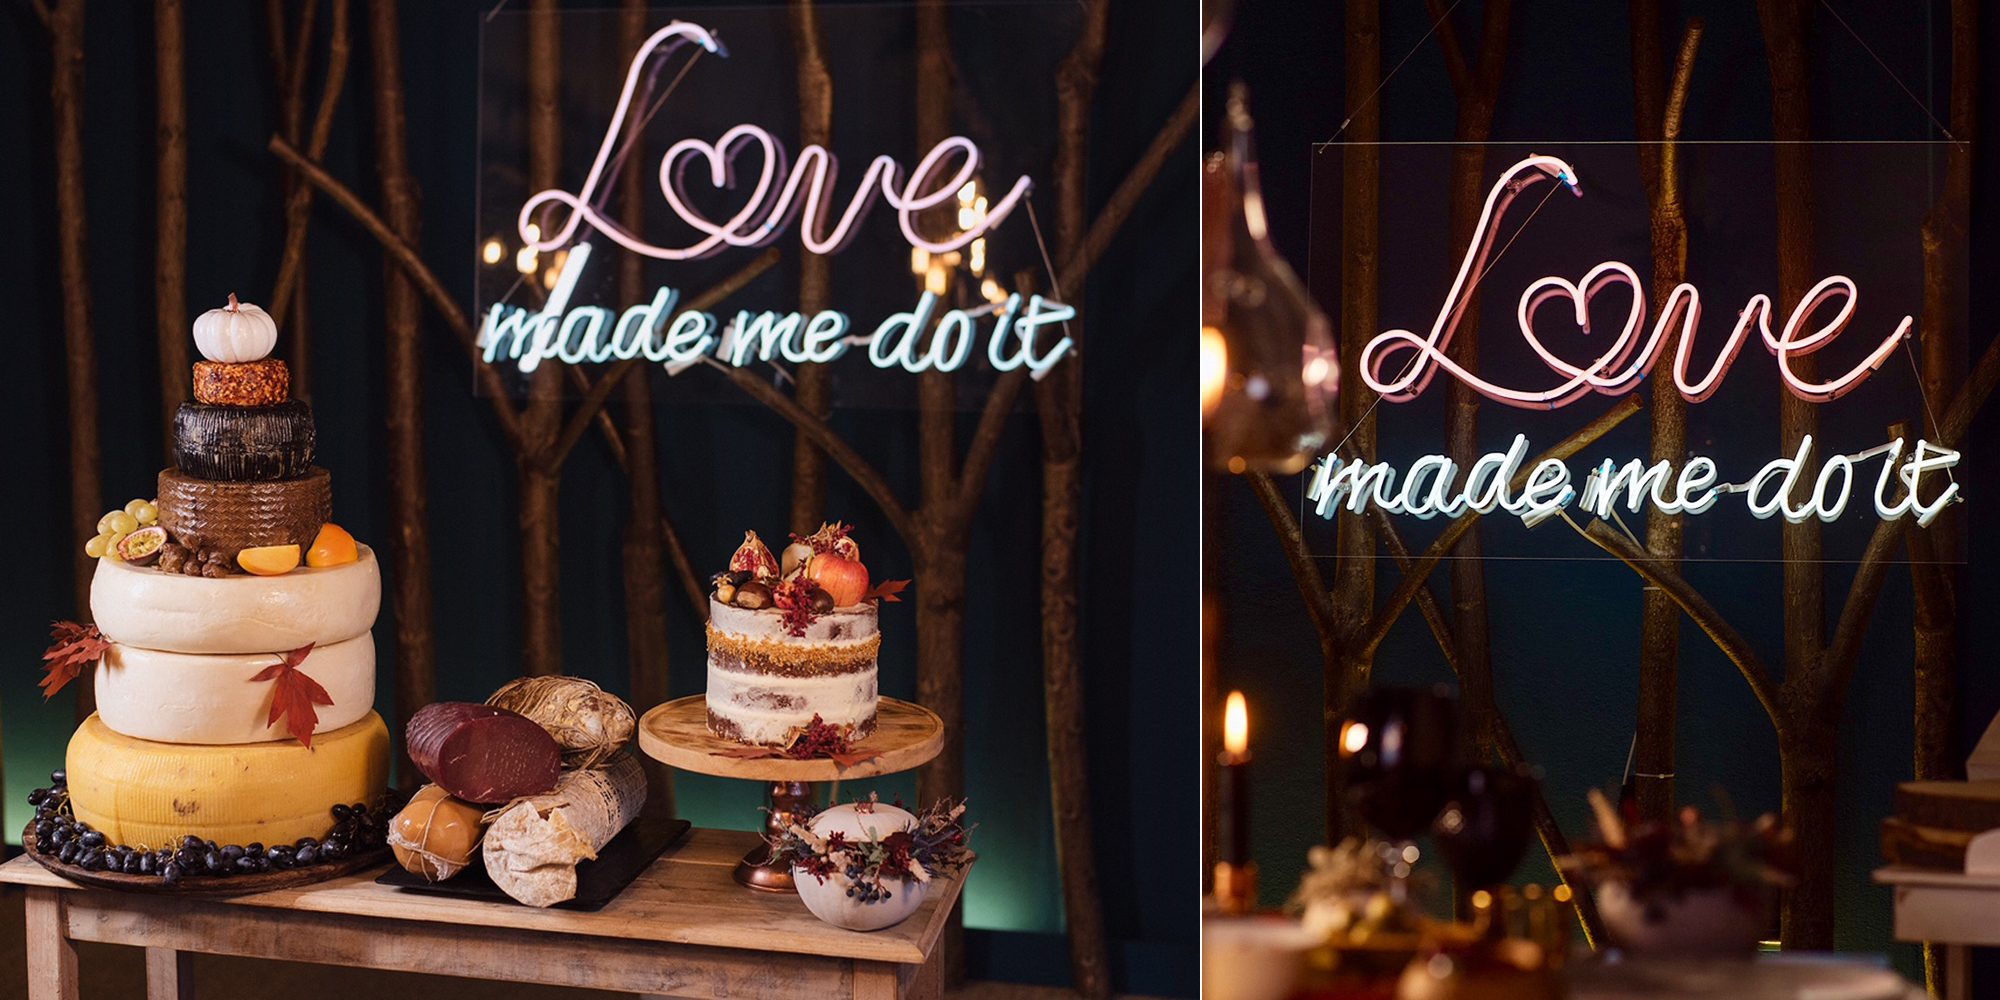 Neon wedding signs by The Letter Co.